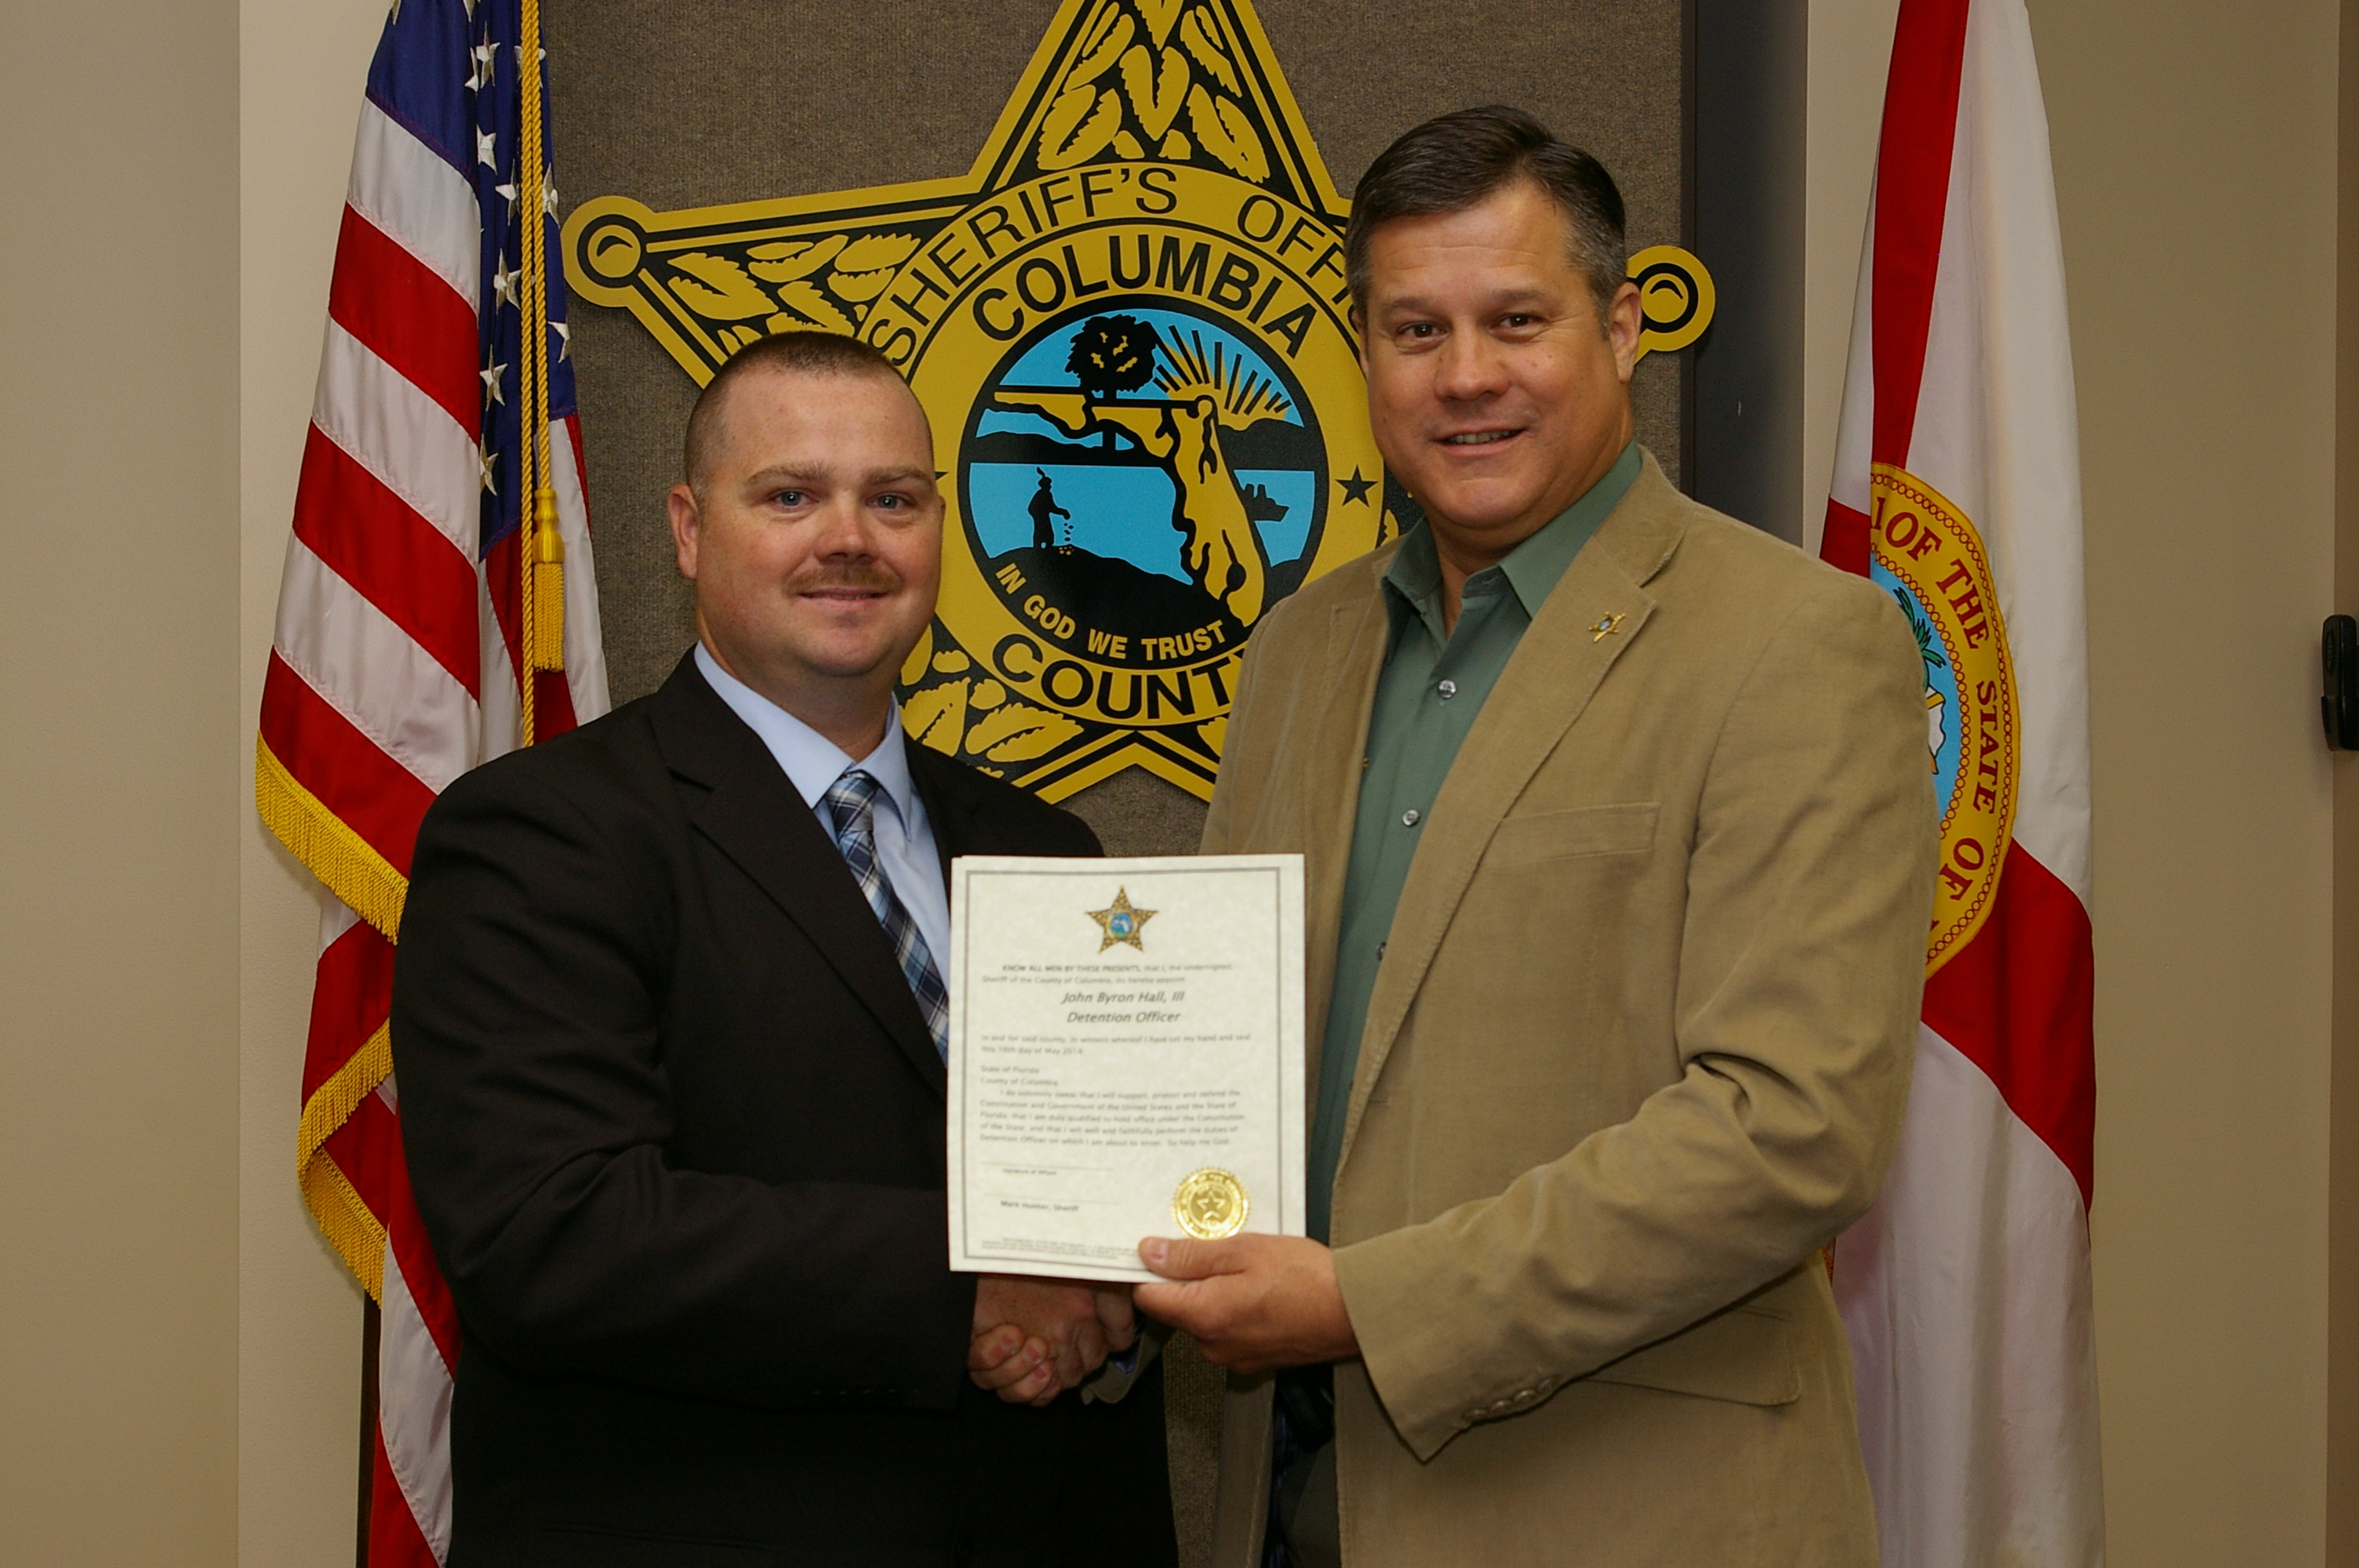 Detention Deputy John Hall and Sheriff Mark Hunter